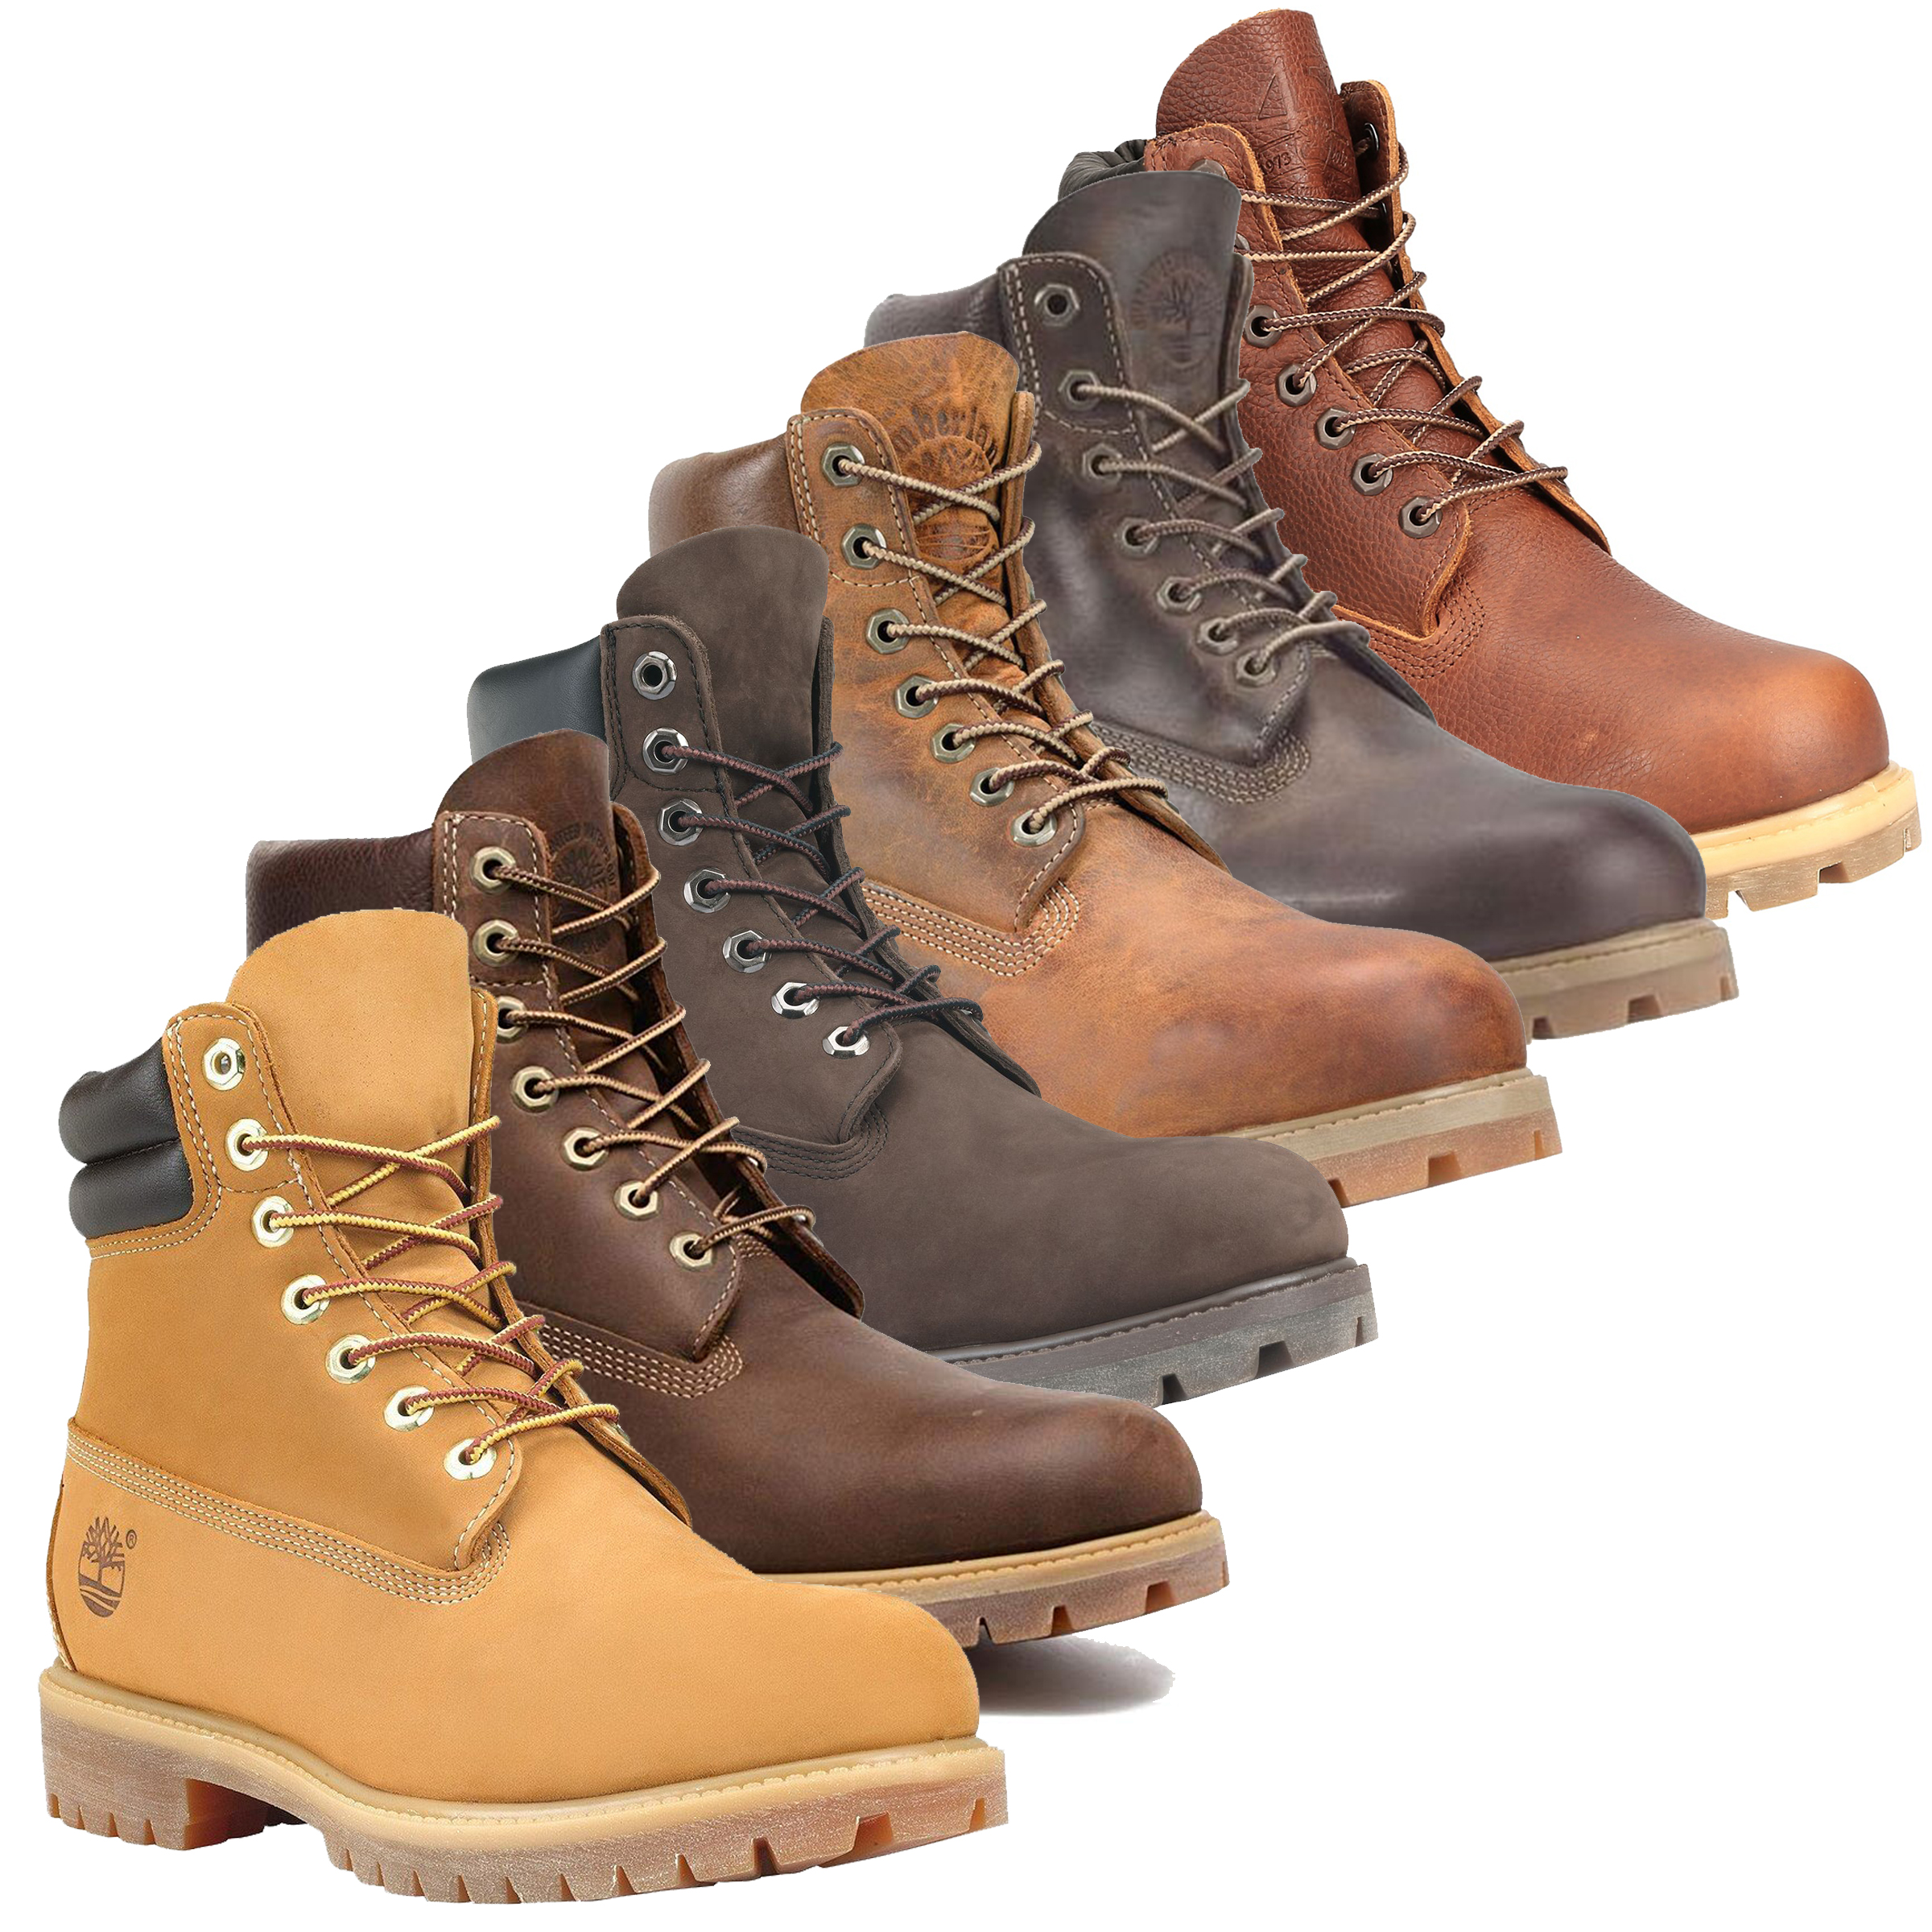 fácil de lastimarse Manifestación Cartas credenciales  Mens Timberland 6-Inch Waterproof Lace Up Leather Ankle Boots Sizes 5.5 to  12.5 | eBay